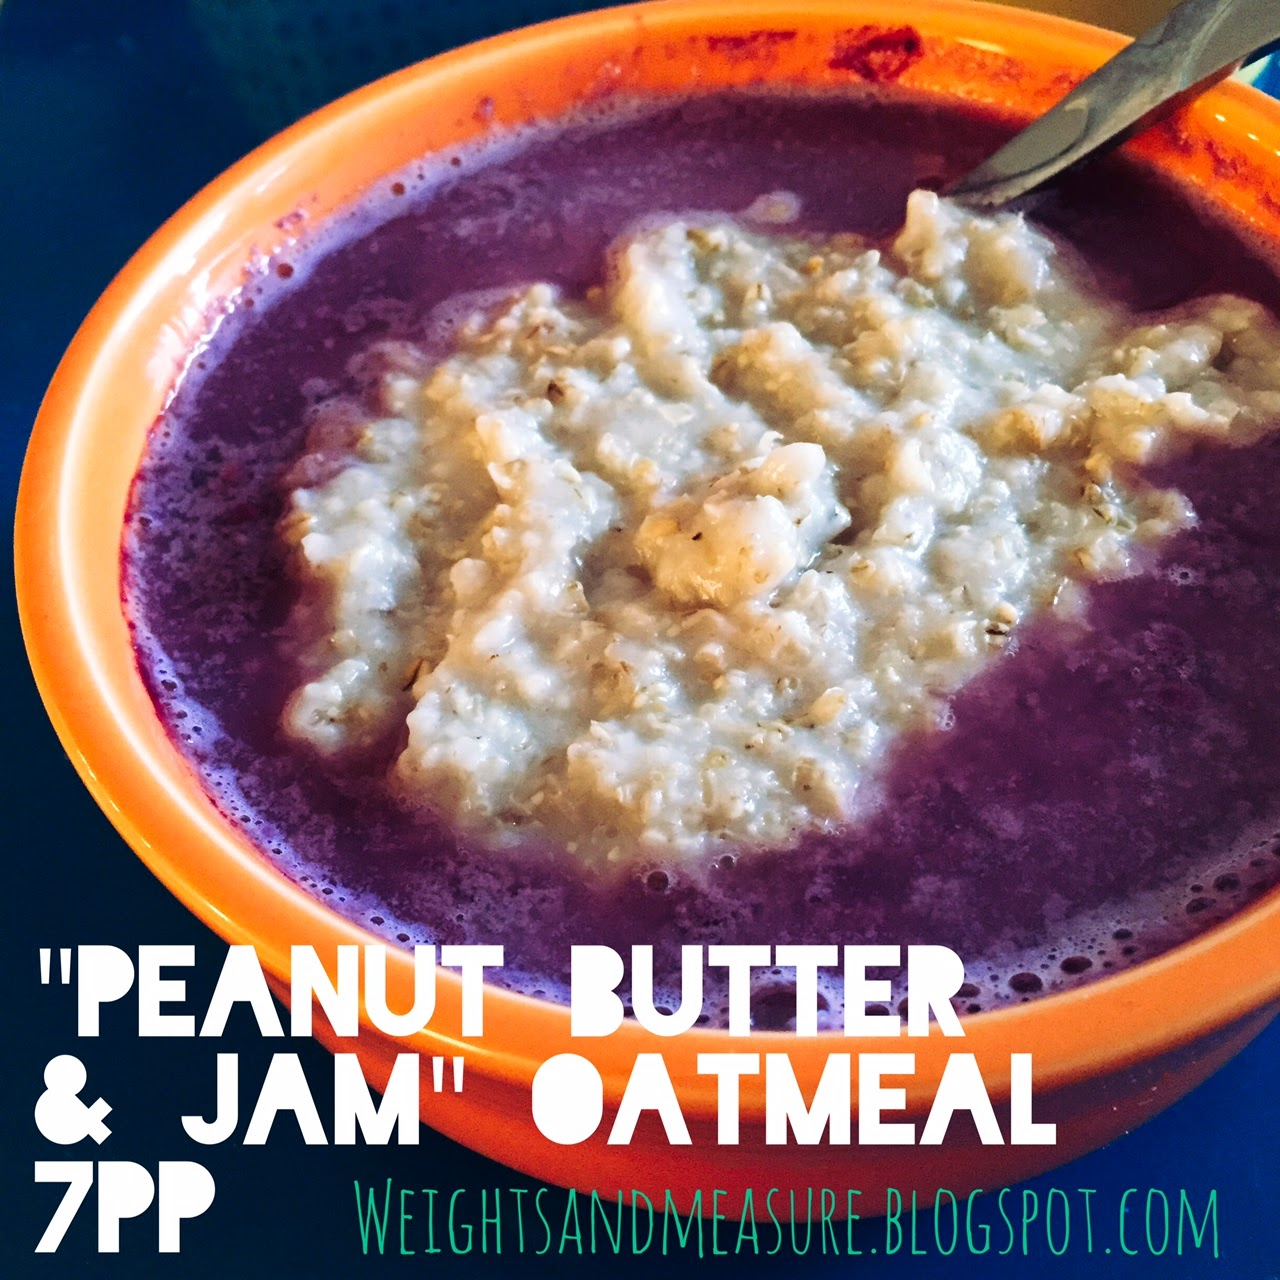 Peanut Butter & Jam Oatmeal - Weights and Measure Blog - 7PP